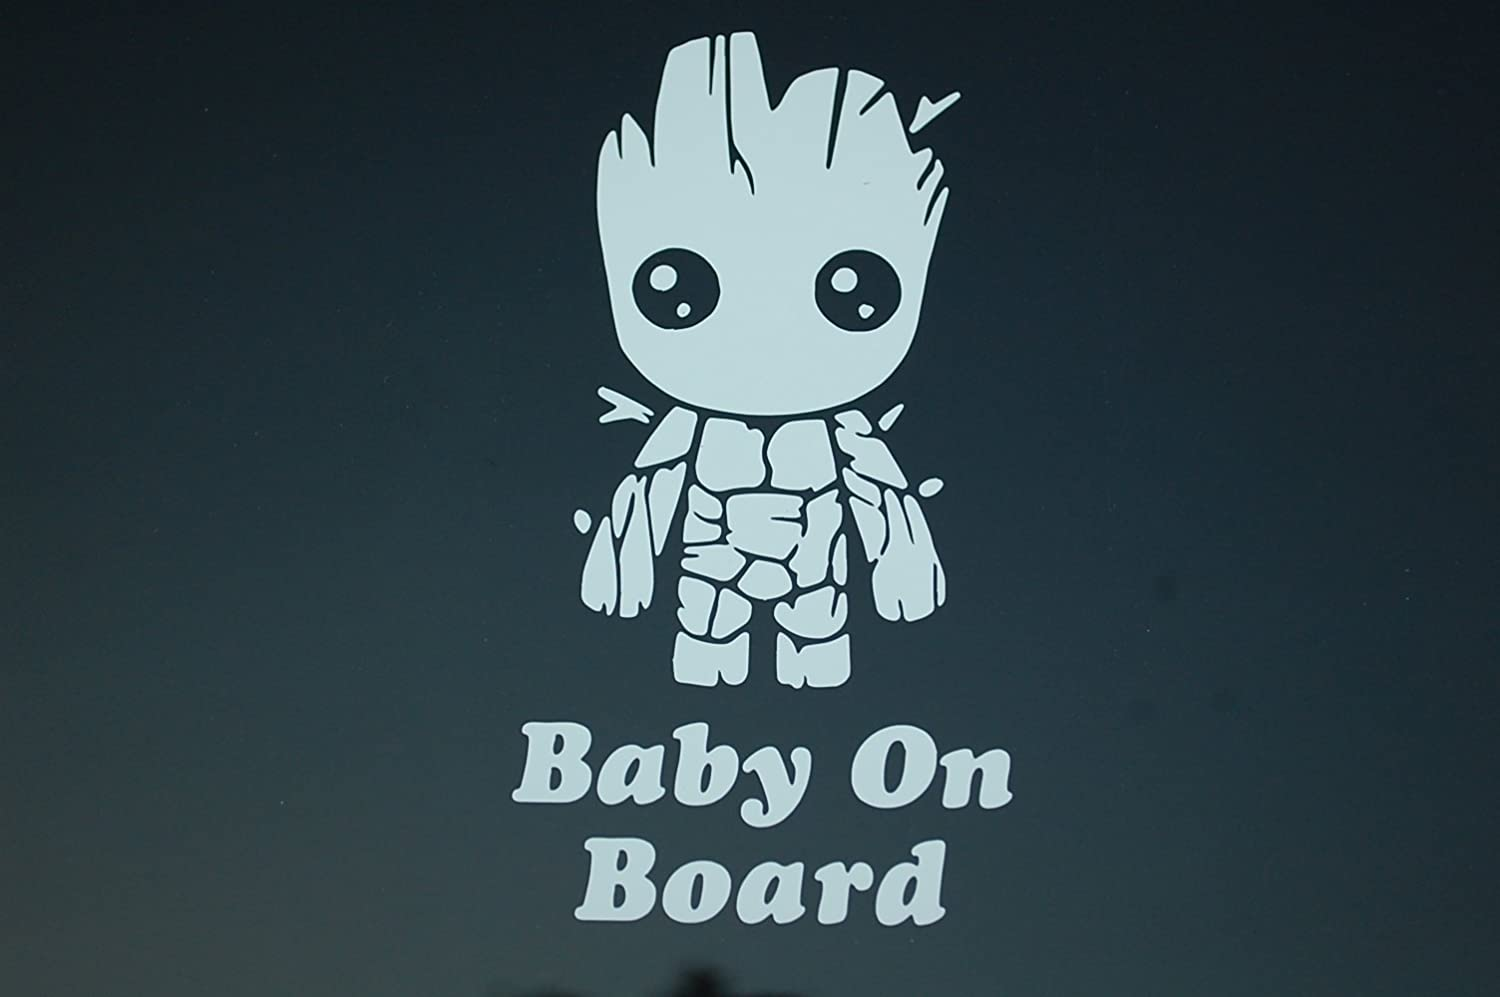 Baby On Board Baby Groot Sticker Vinyl Decal Choose Color! White V521 Car Window